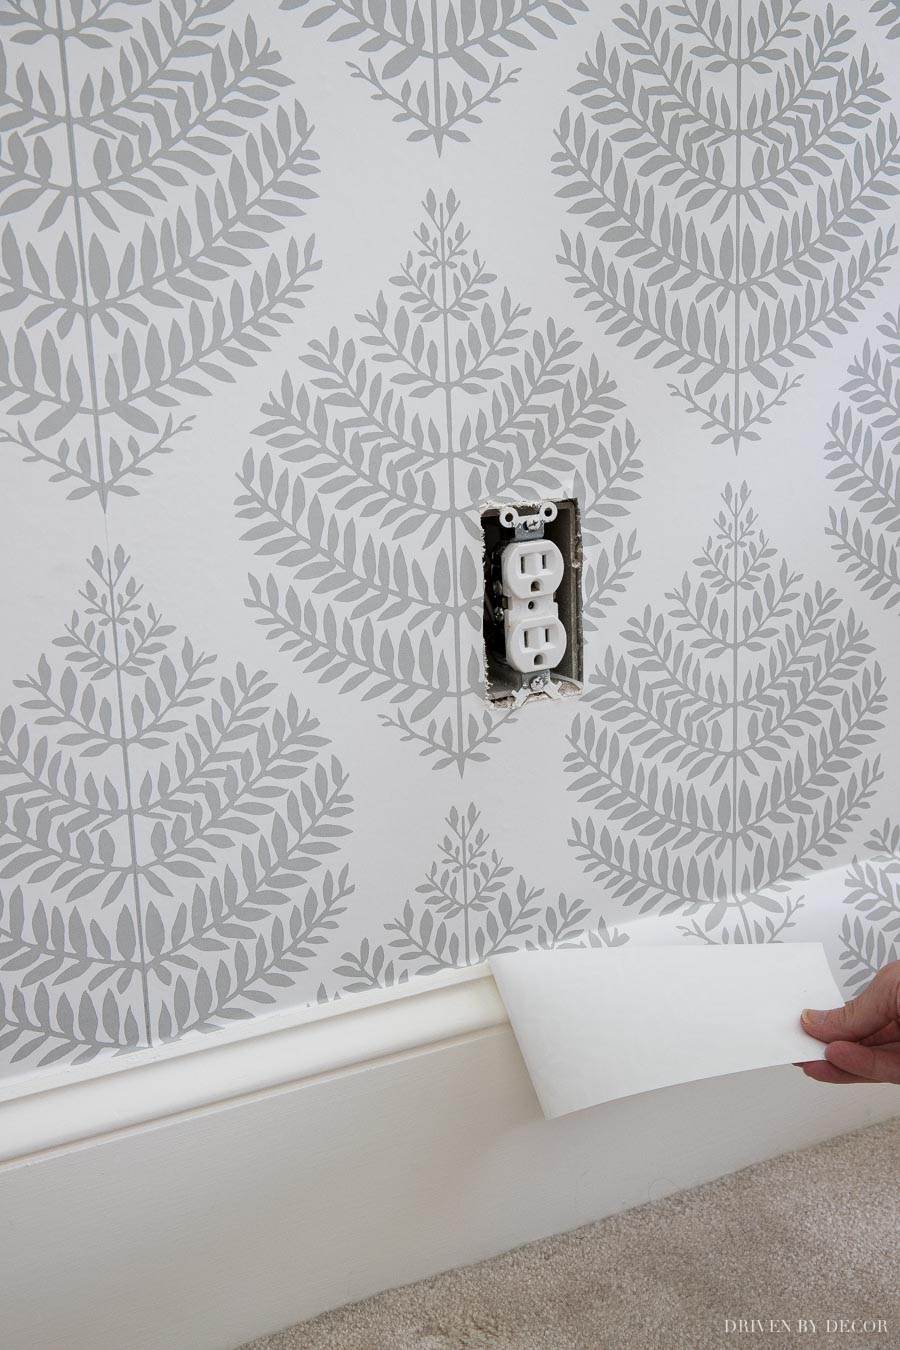 How to cut off extra wallpaper in a straight line